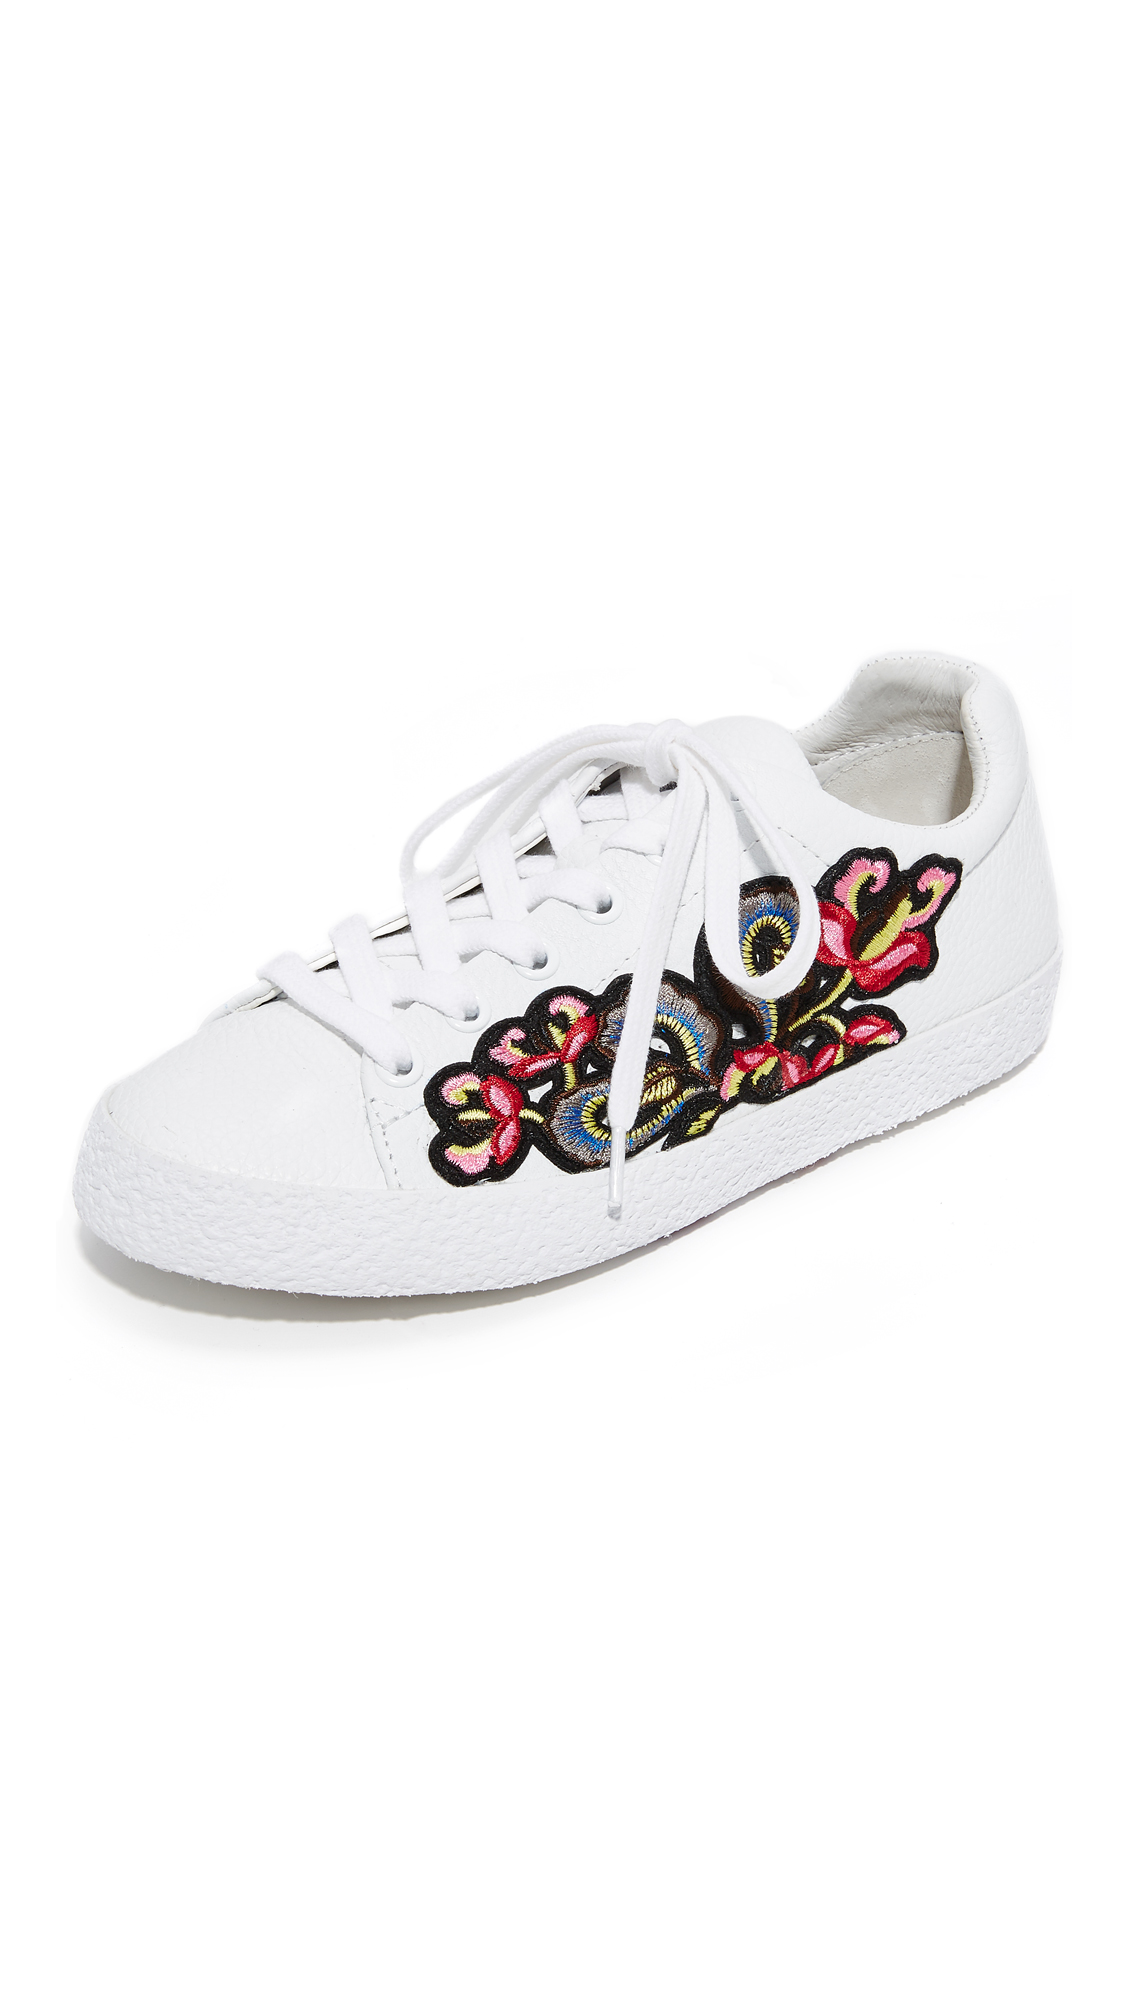 Ash Nak Bis Sneakers - White/Red at Shopbop